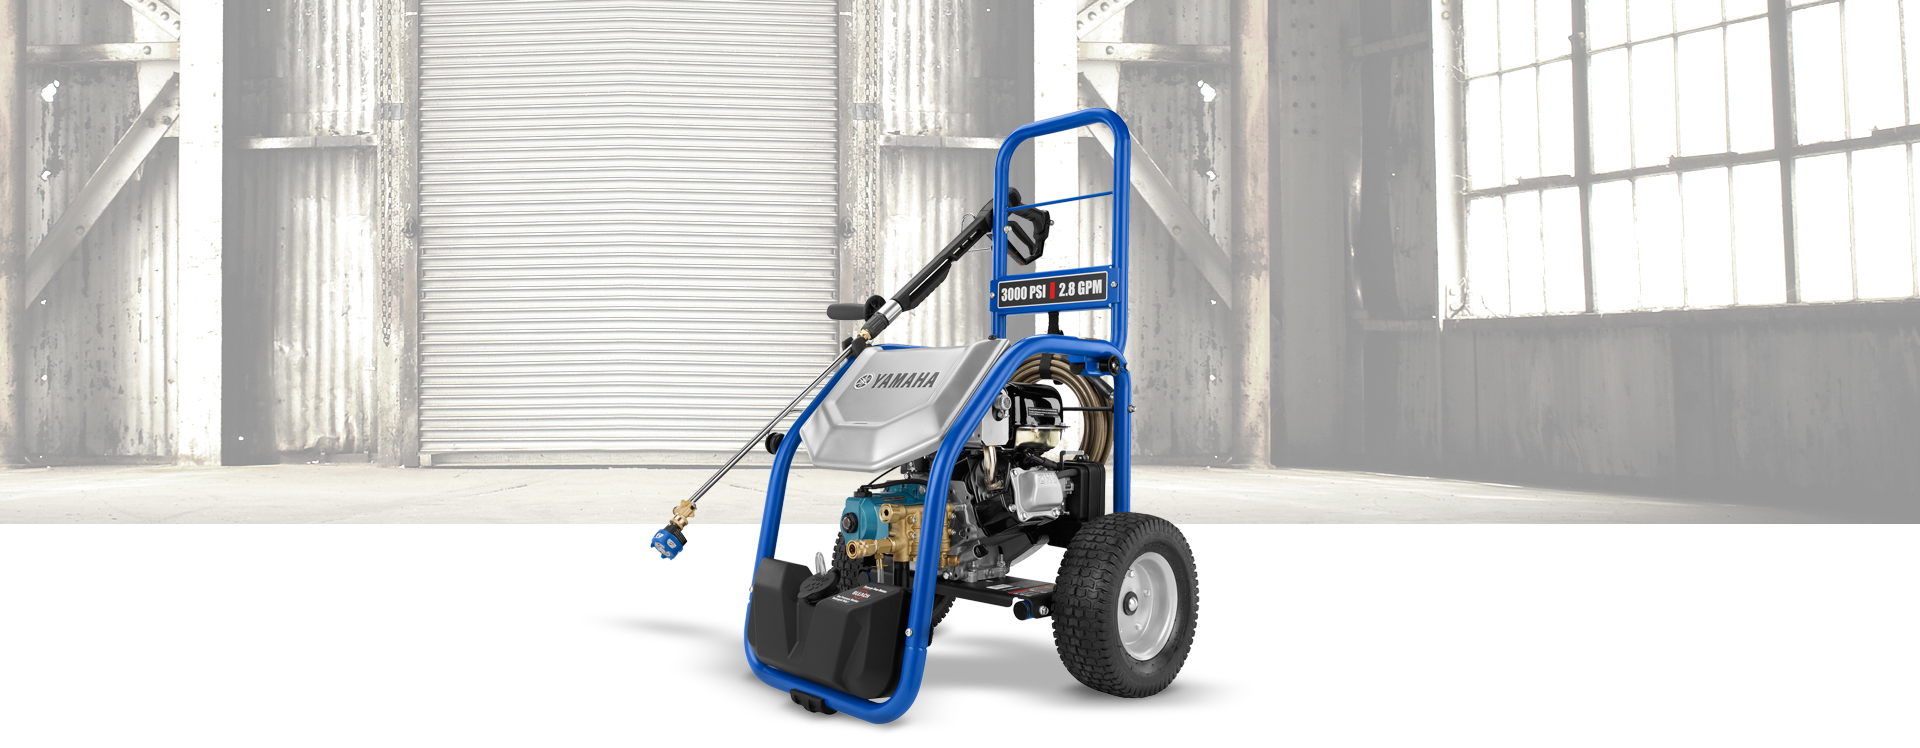 Yamaha PW3028 Pressure Washer - Model Home